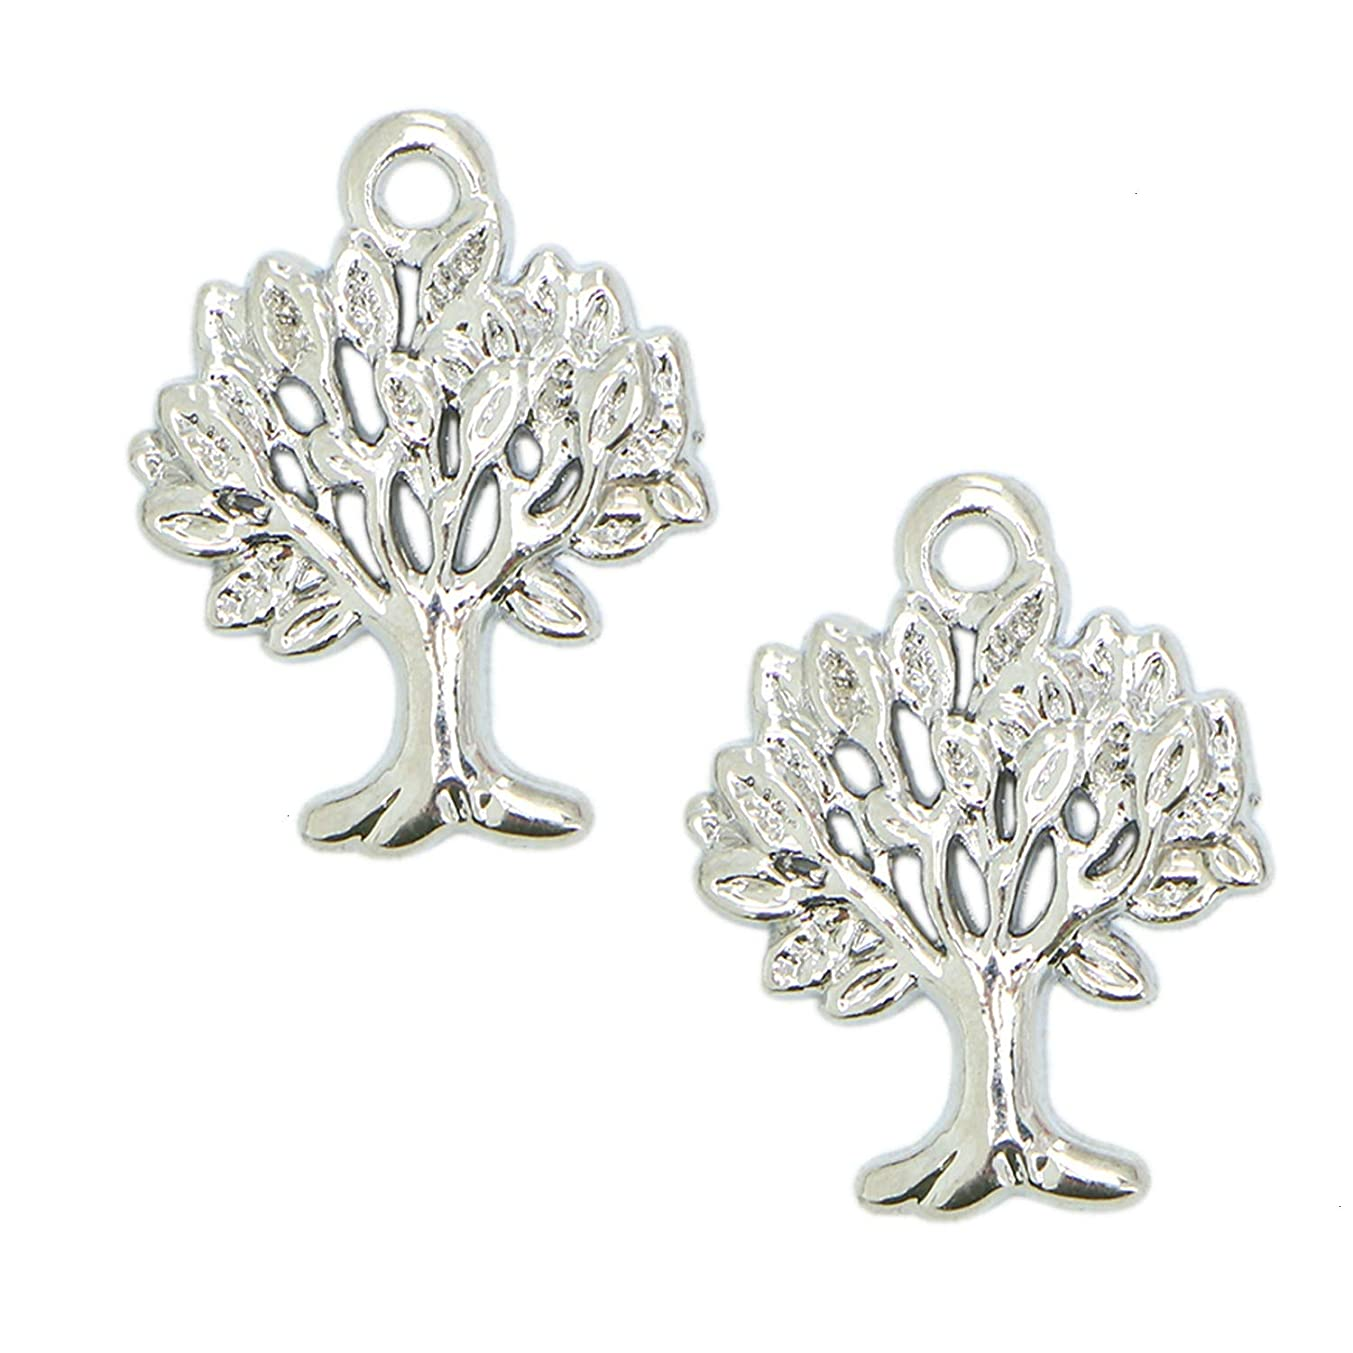 Monrocco 80Pcs Antique Silver Tree of Life Charms Pendants Alloy Charms Pendants for Jewelry Making and Crafting